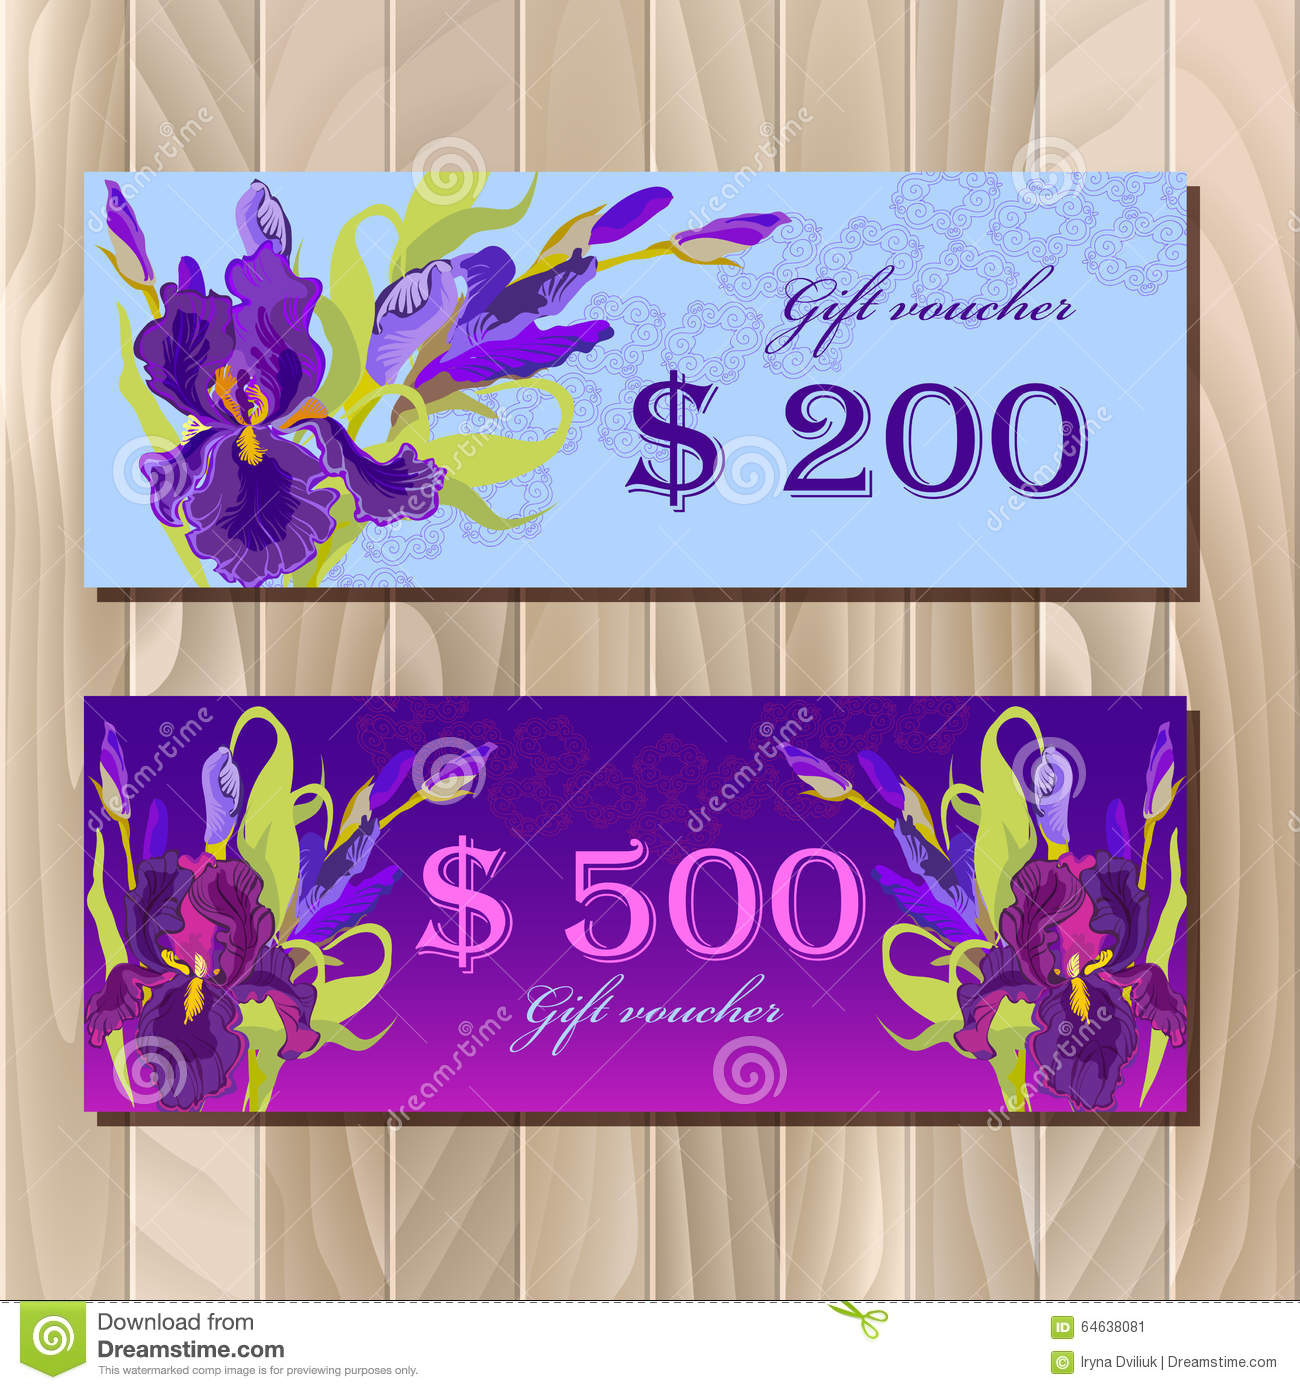 Gift certificate printable card template with purple iris flower gift certificate printable card template with purple iris flower design izmirmasajfo